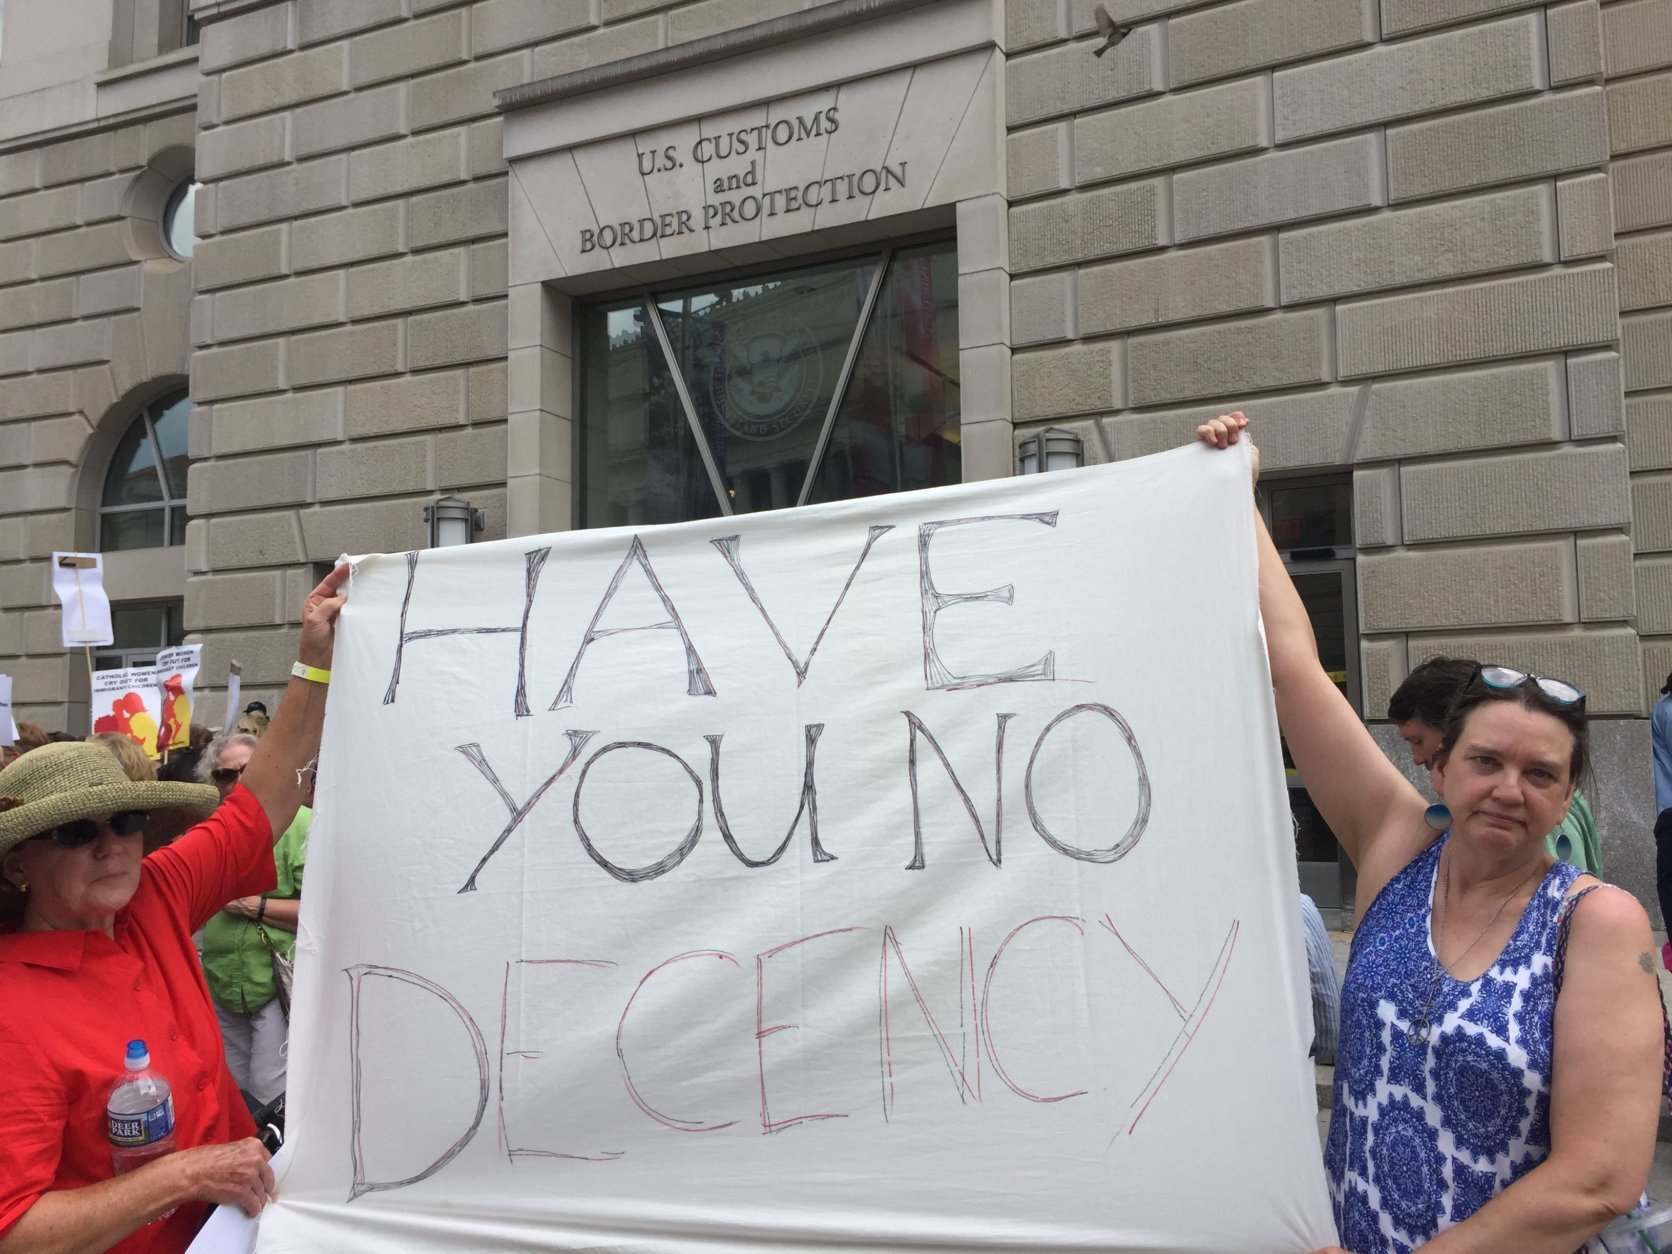 Close to 200 women gathered outside of the United States Customs and Border Protection headquarters in D.C. on Tuesday to protest Trump's immigration policy. (Photo by Don Squires)